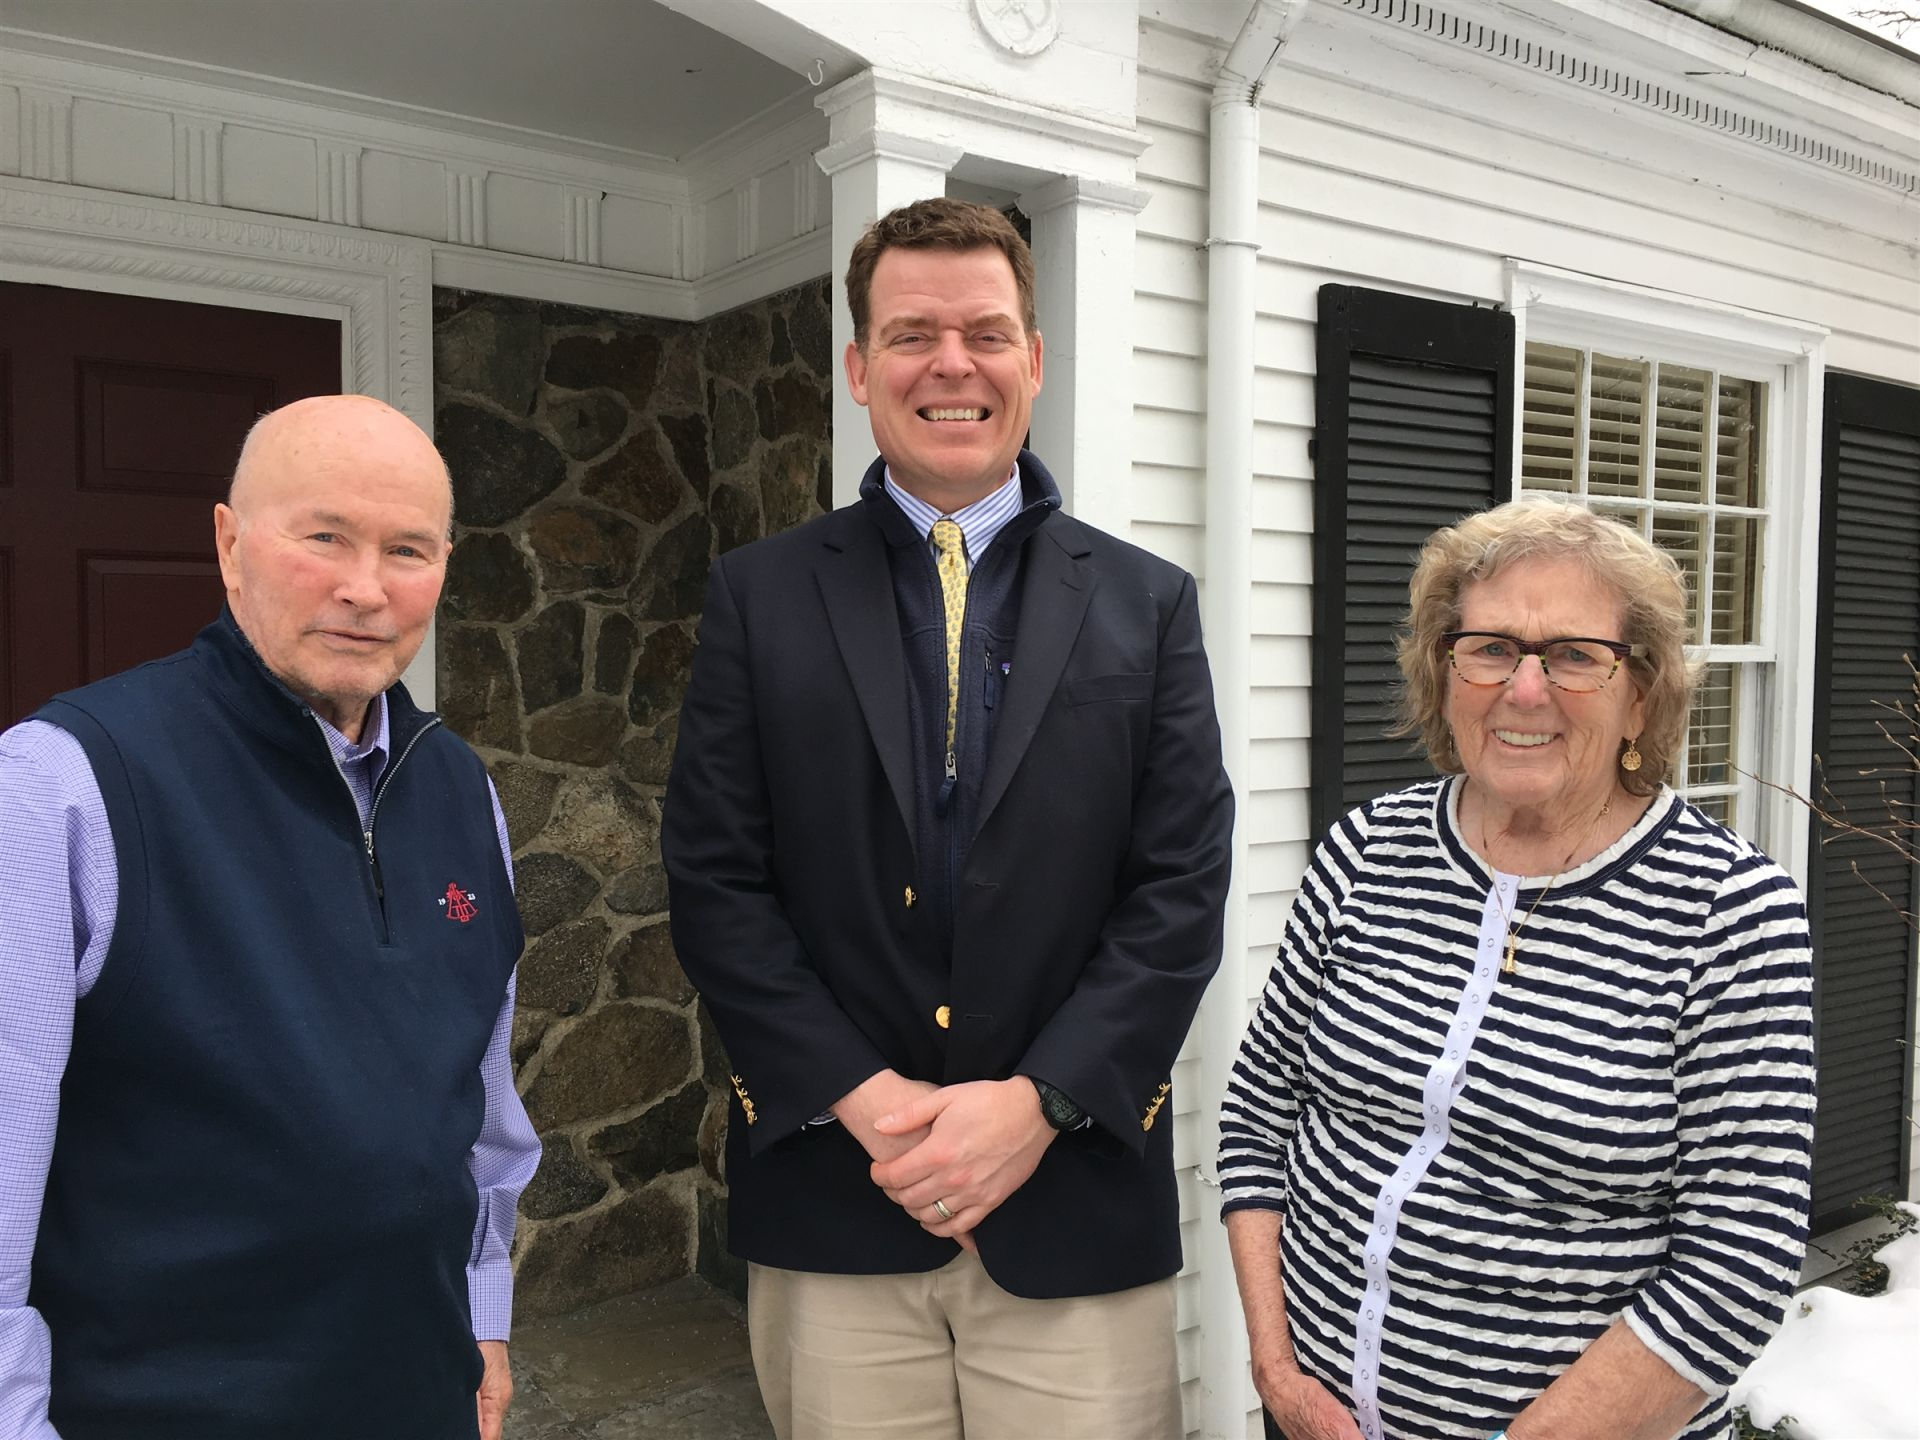 Polly and John Pike '49 visit Alumni House in February 2019.